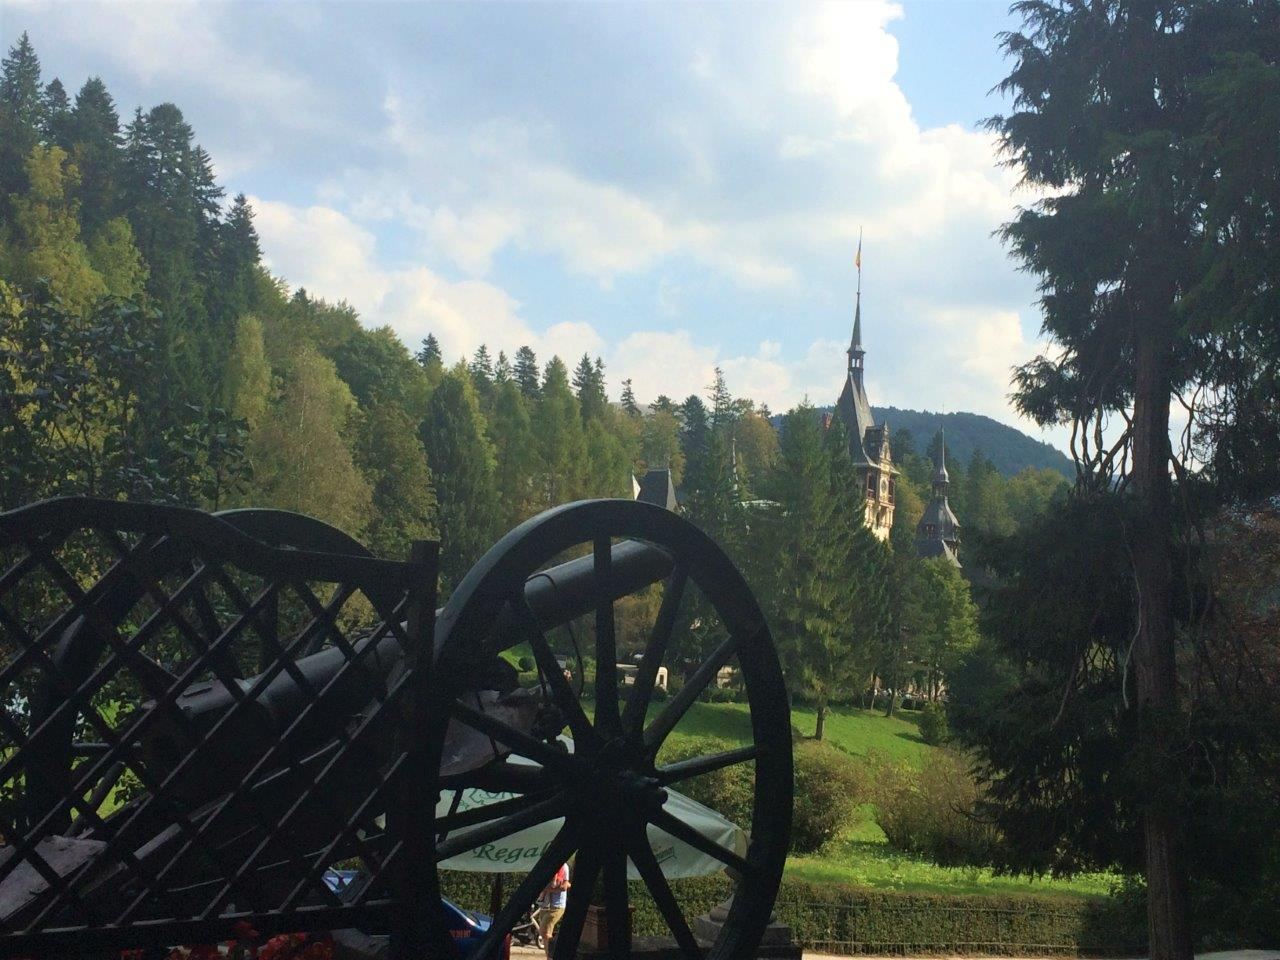 Peles Castle with a cannon in front of it